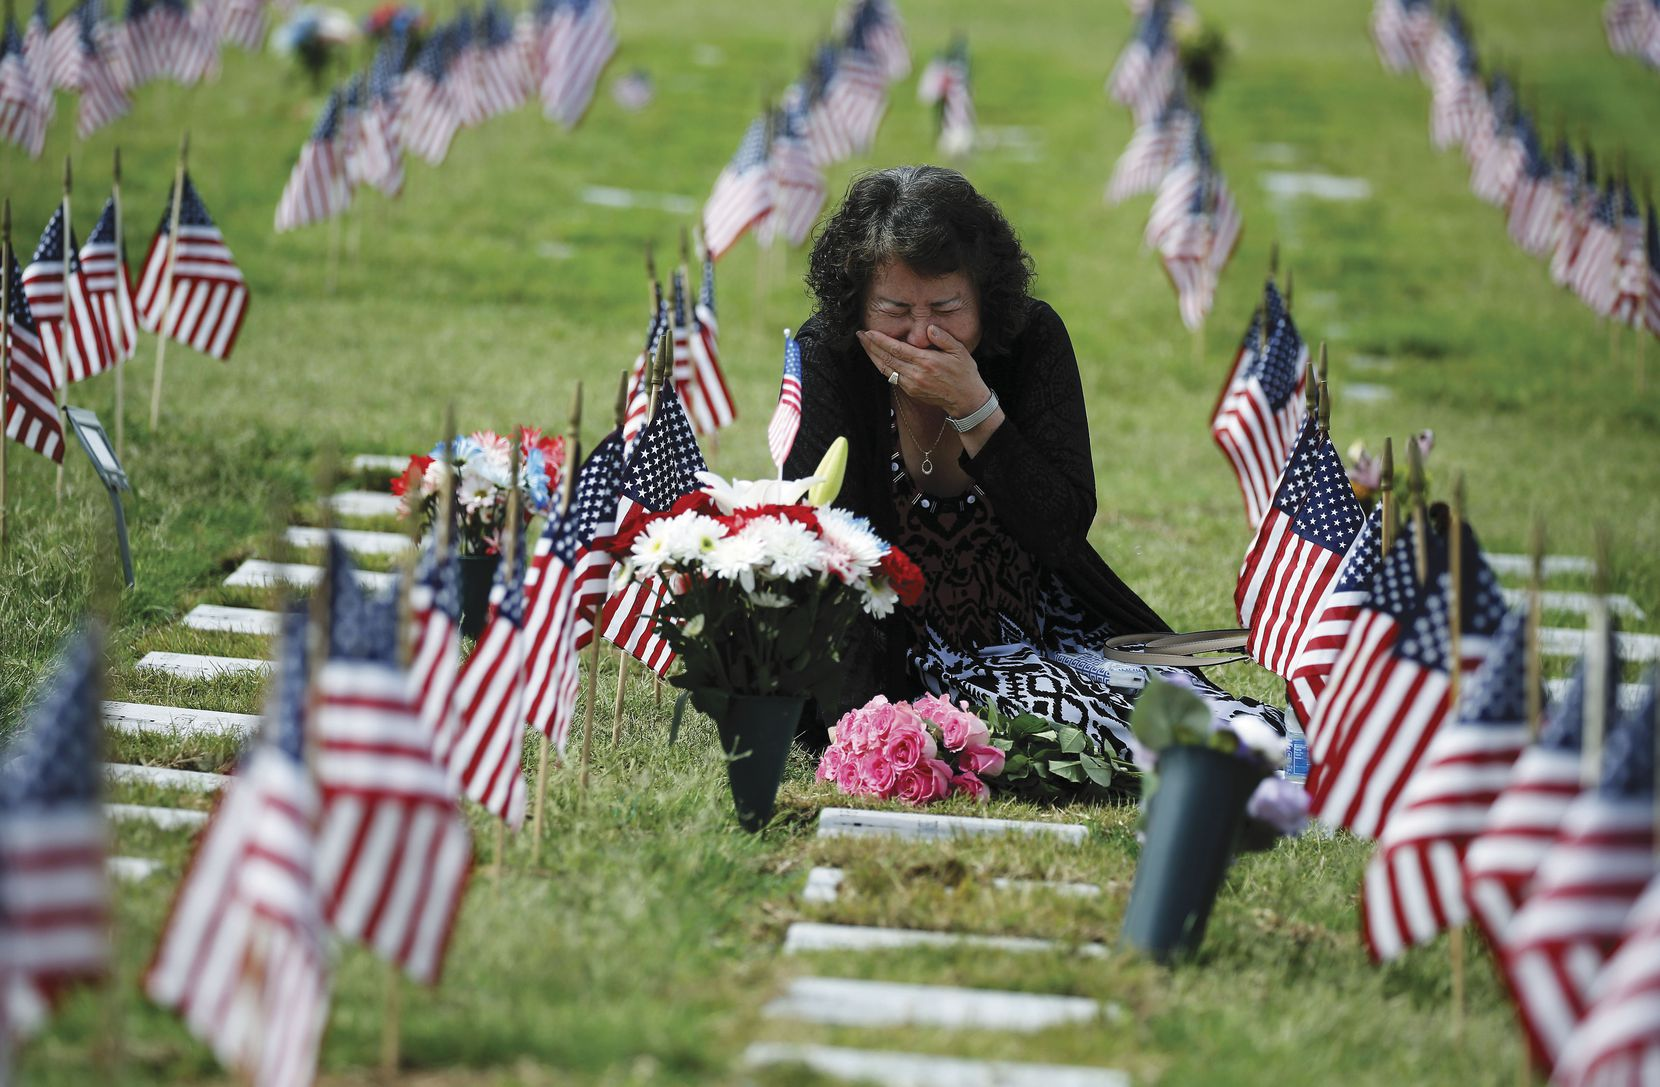 Una Pemberton of Wichita Falls weeps at the grave of her son, Clem J. Strait III, who served in the Army in the Persian Gulf War. She was there to honor him during the Memorial Day observance at D-FW National Cemetery.